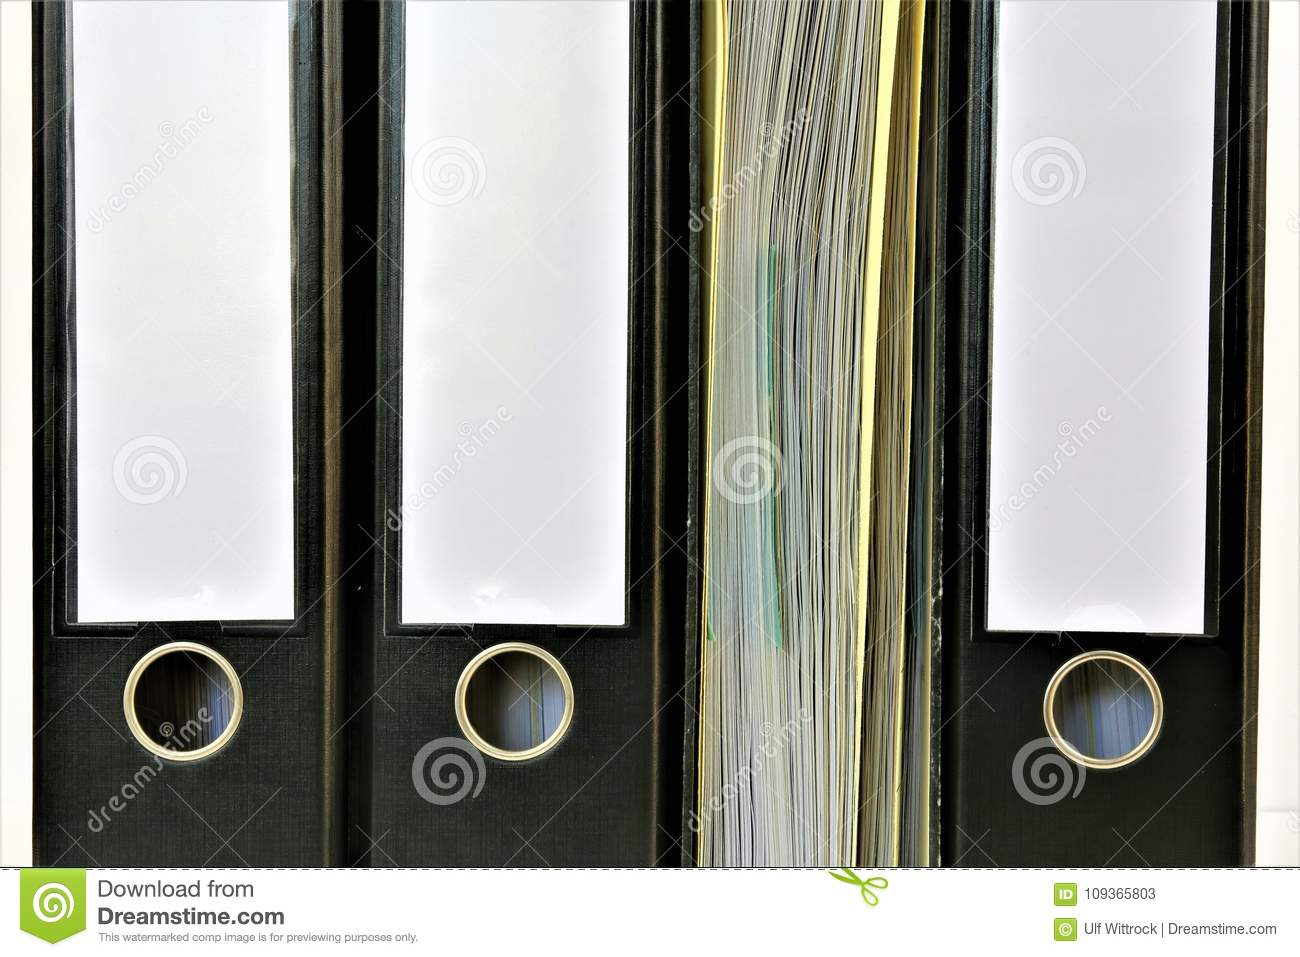 An concept Image of a binder with copy space